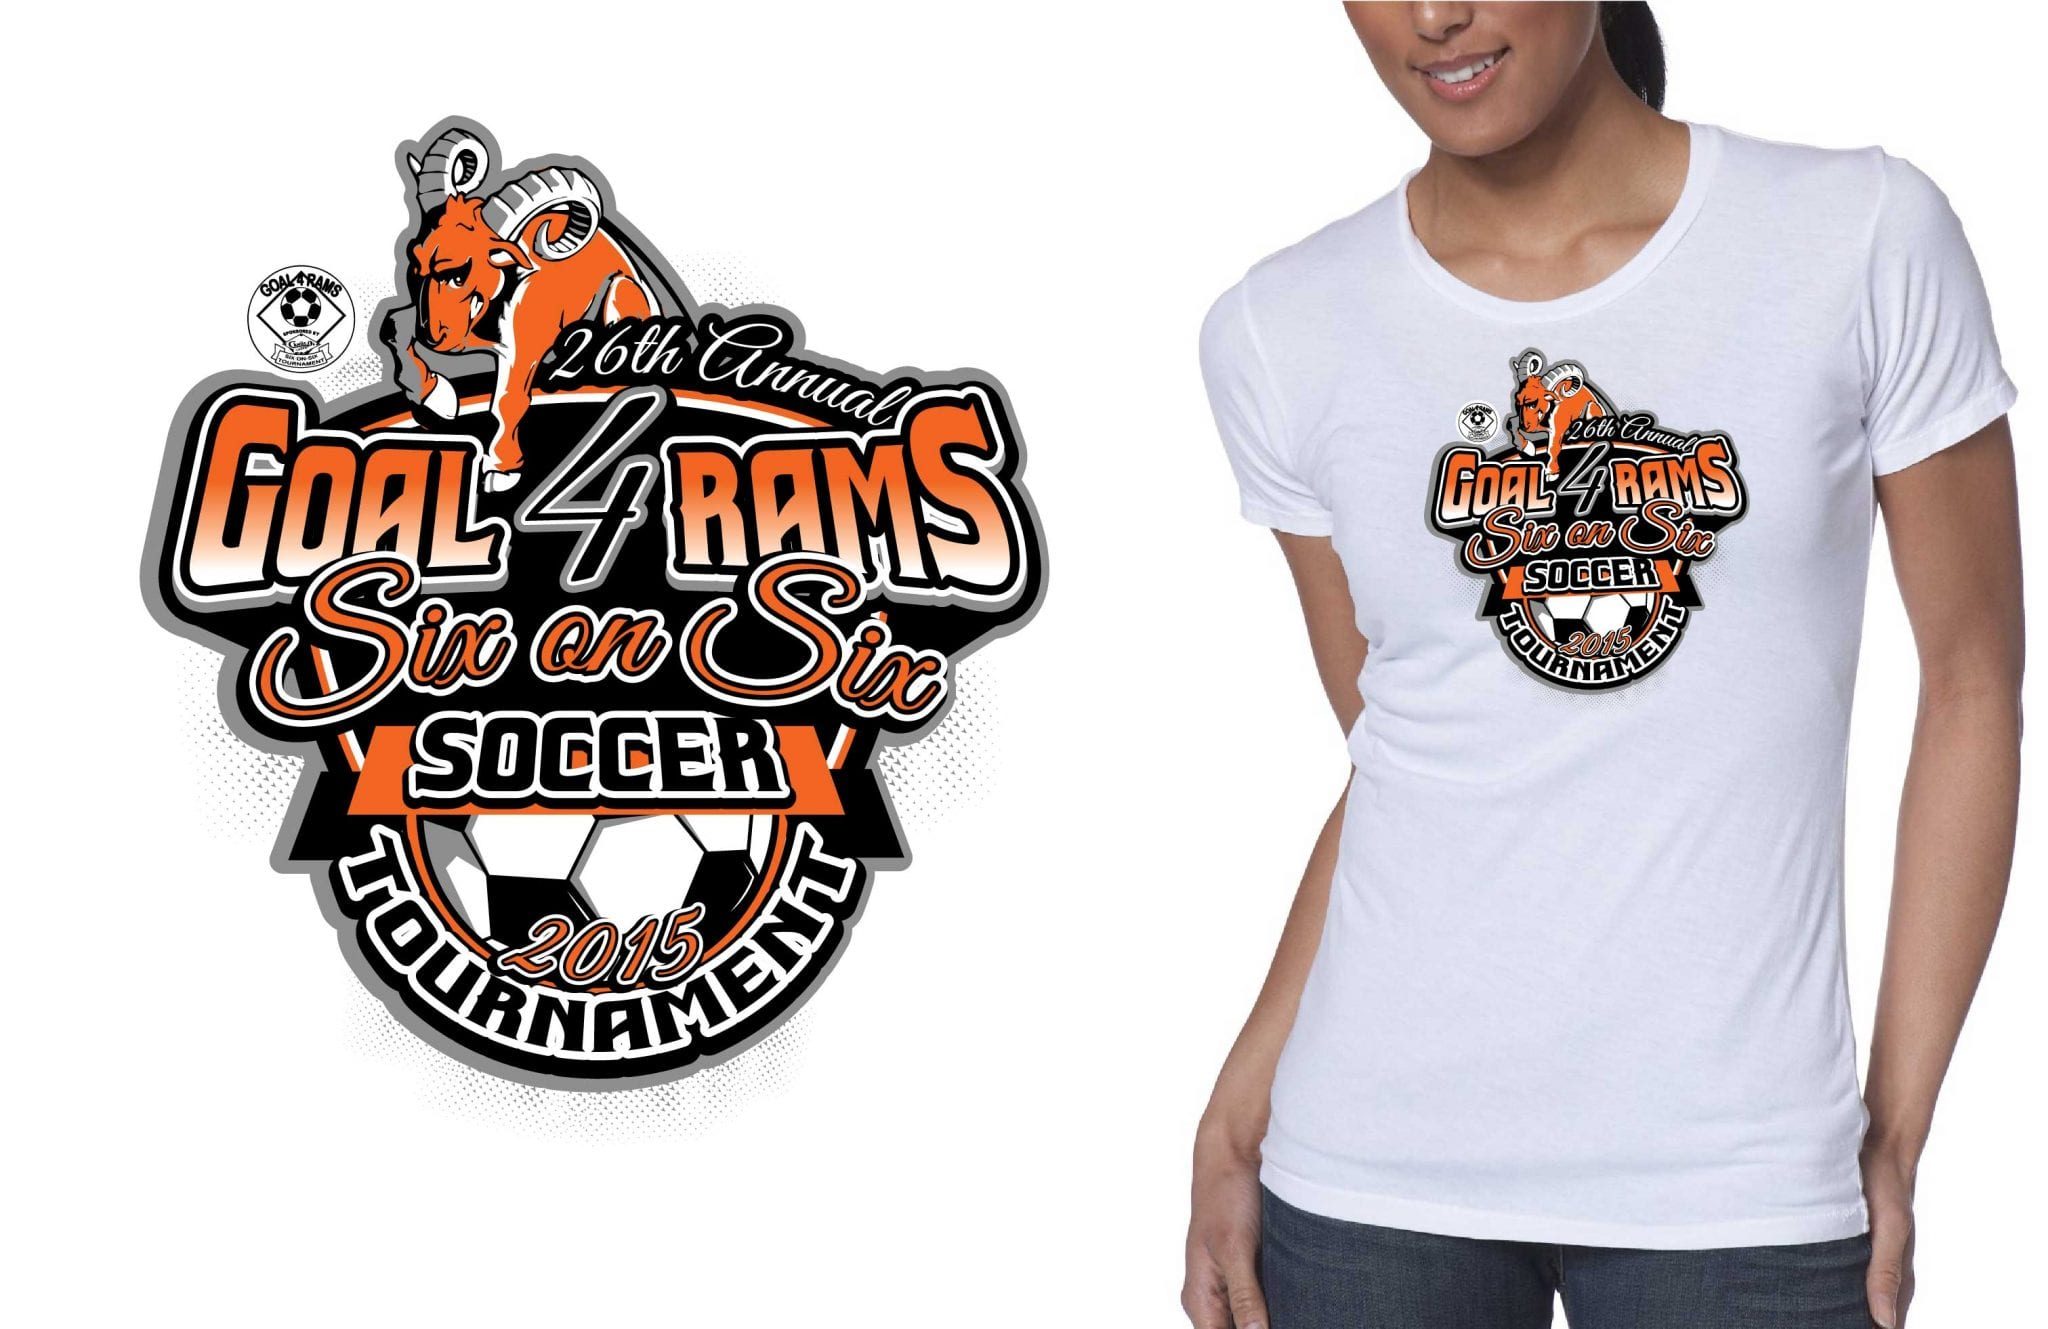 2015 26th annual goal 4 rams six on six soccer tournament cool soccer t shirt logo - Soccer T Shirt Design Ideas